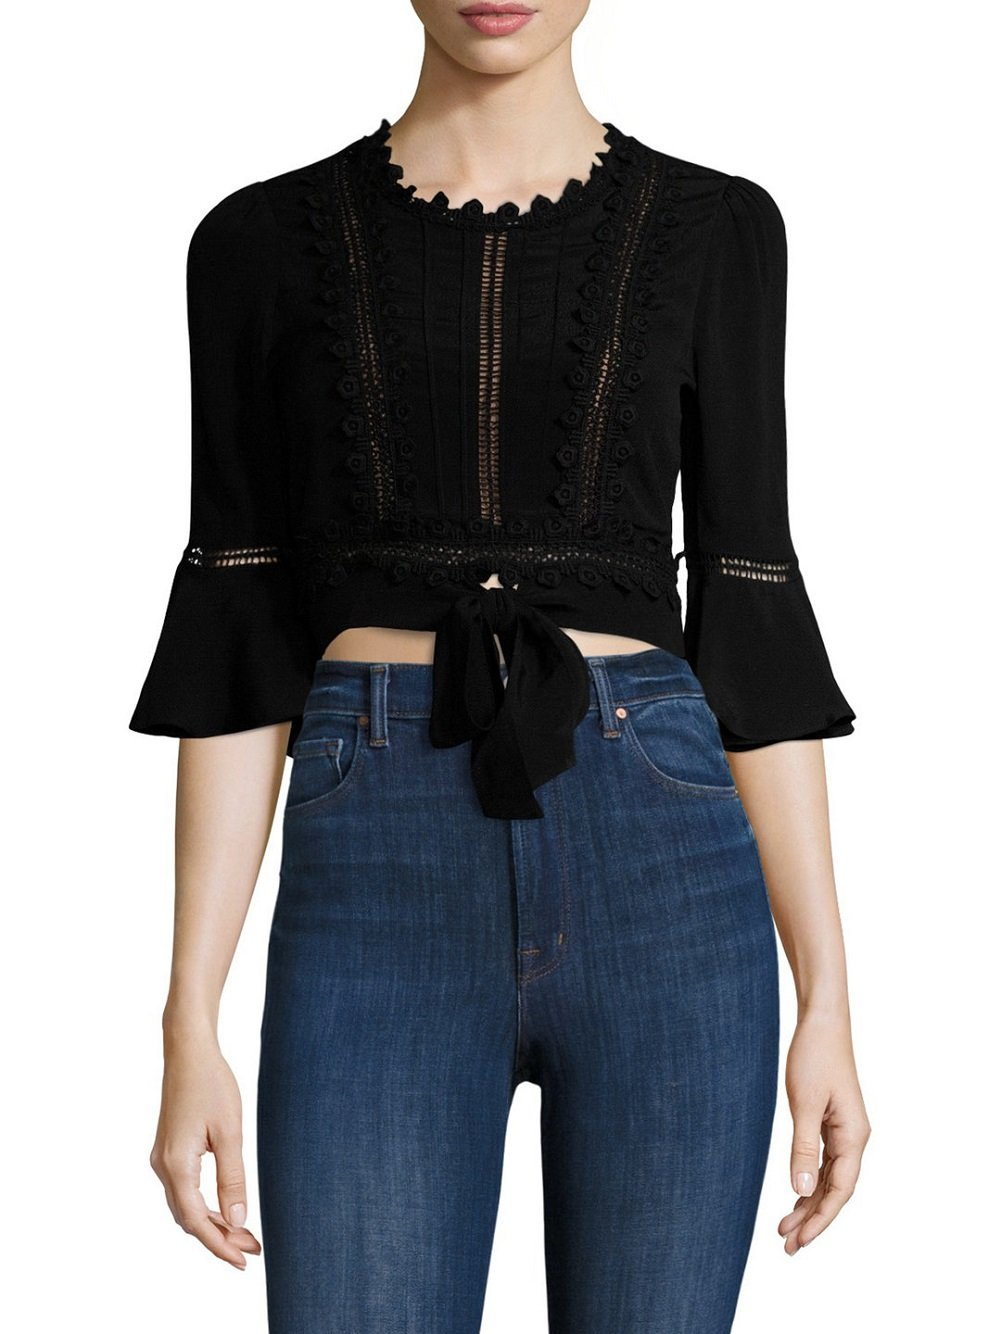 For Love & Lemons - Willow Crop Top - Black - S